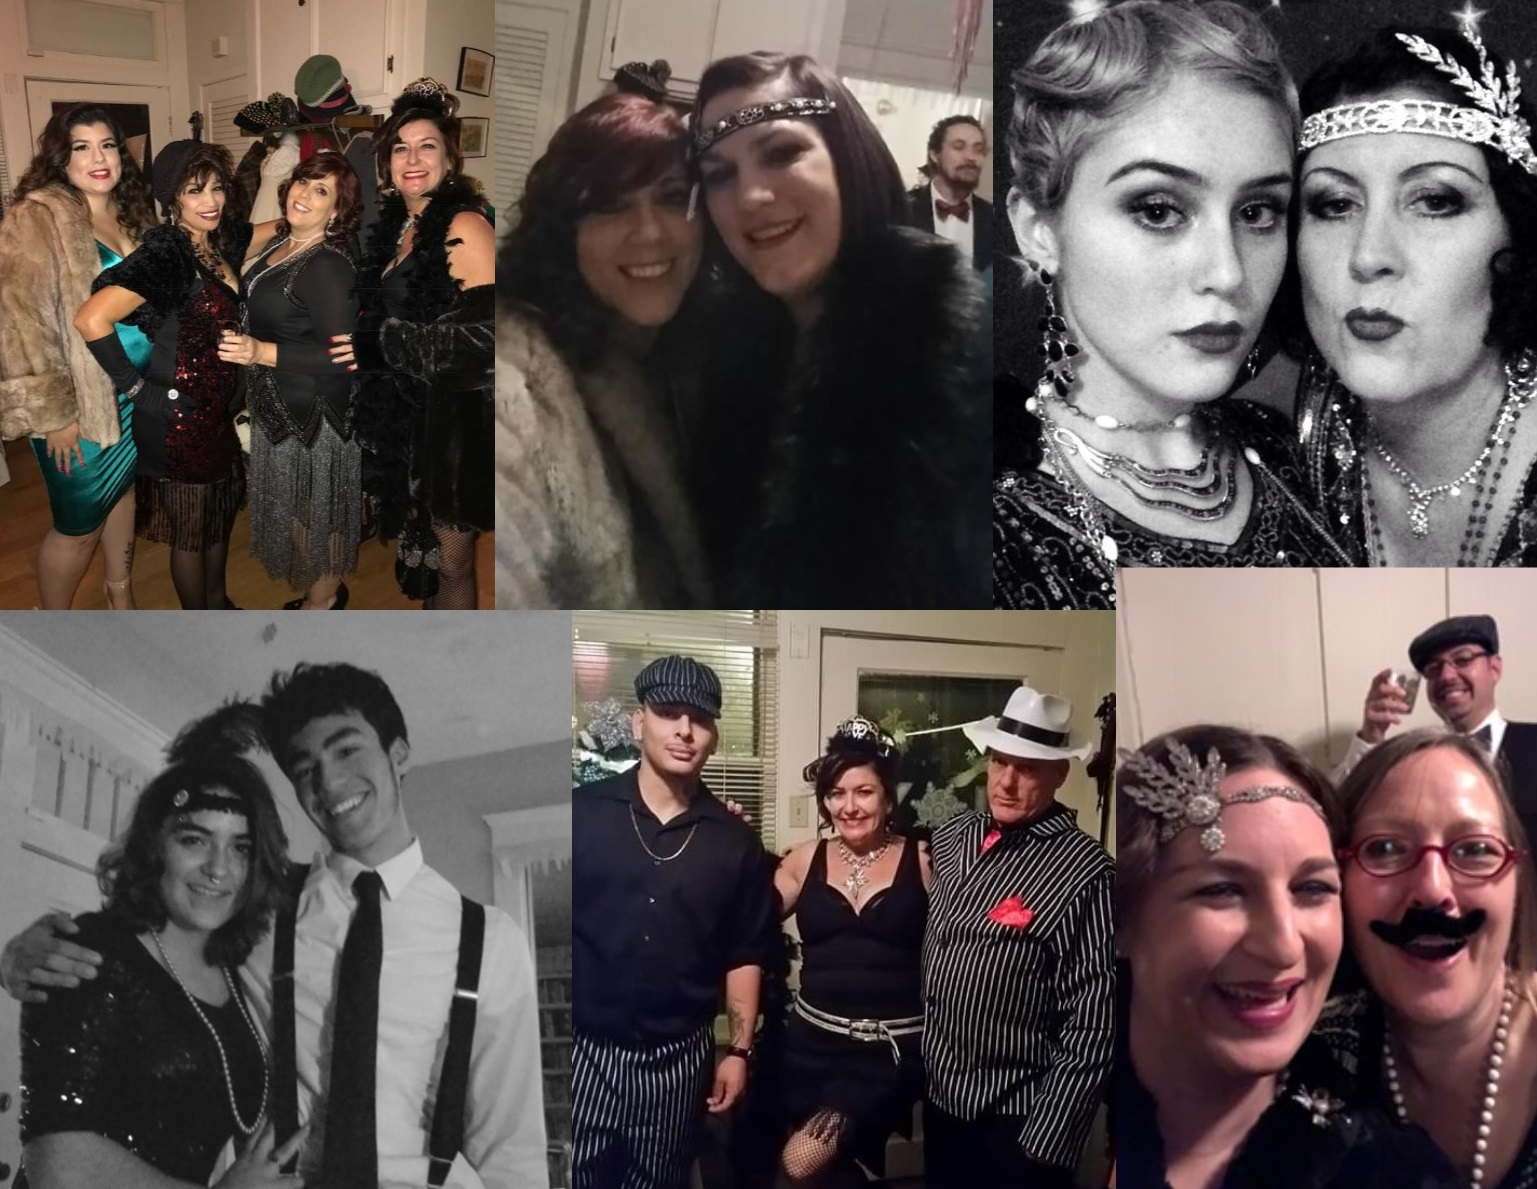 1920s New years Eve party 2018 costumes collage